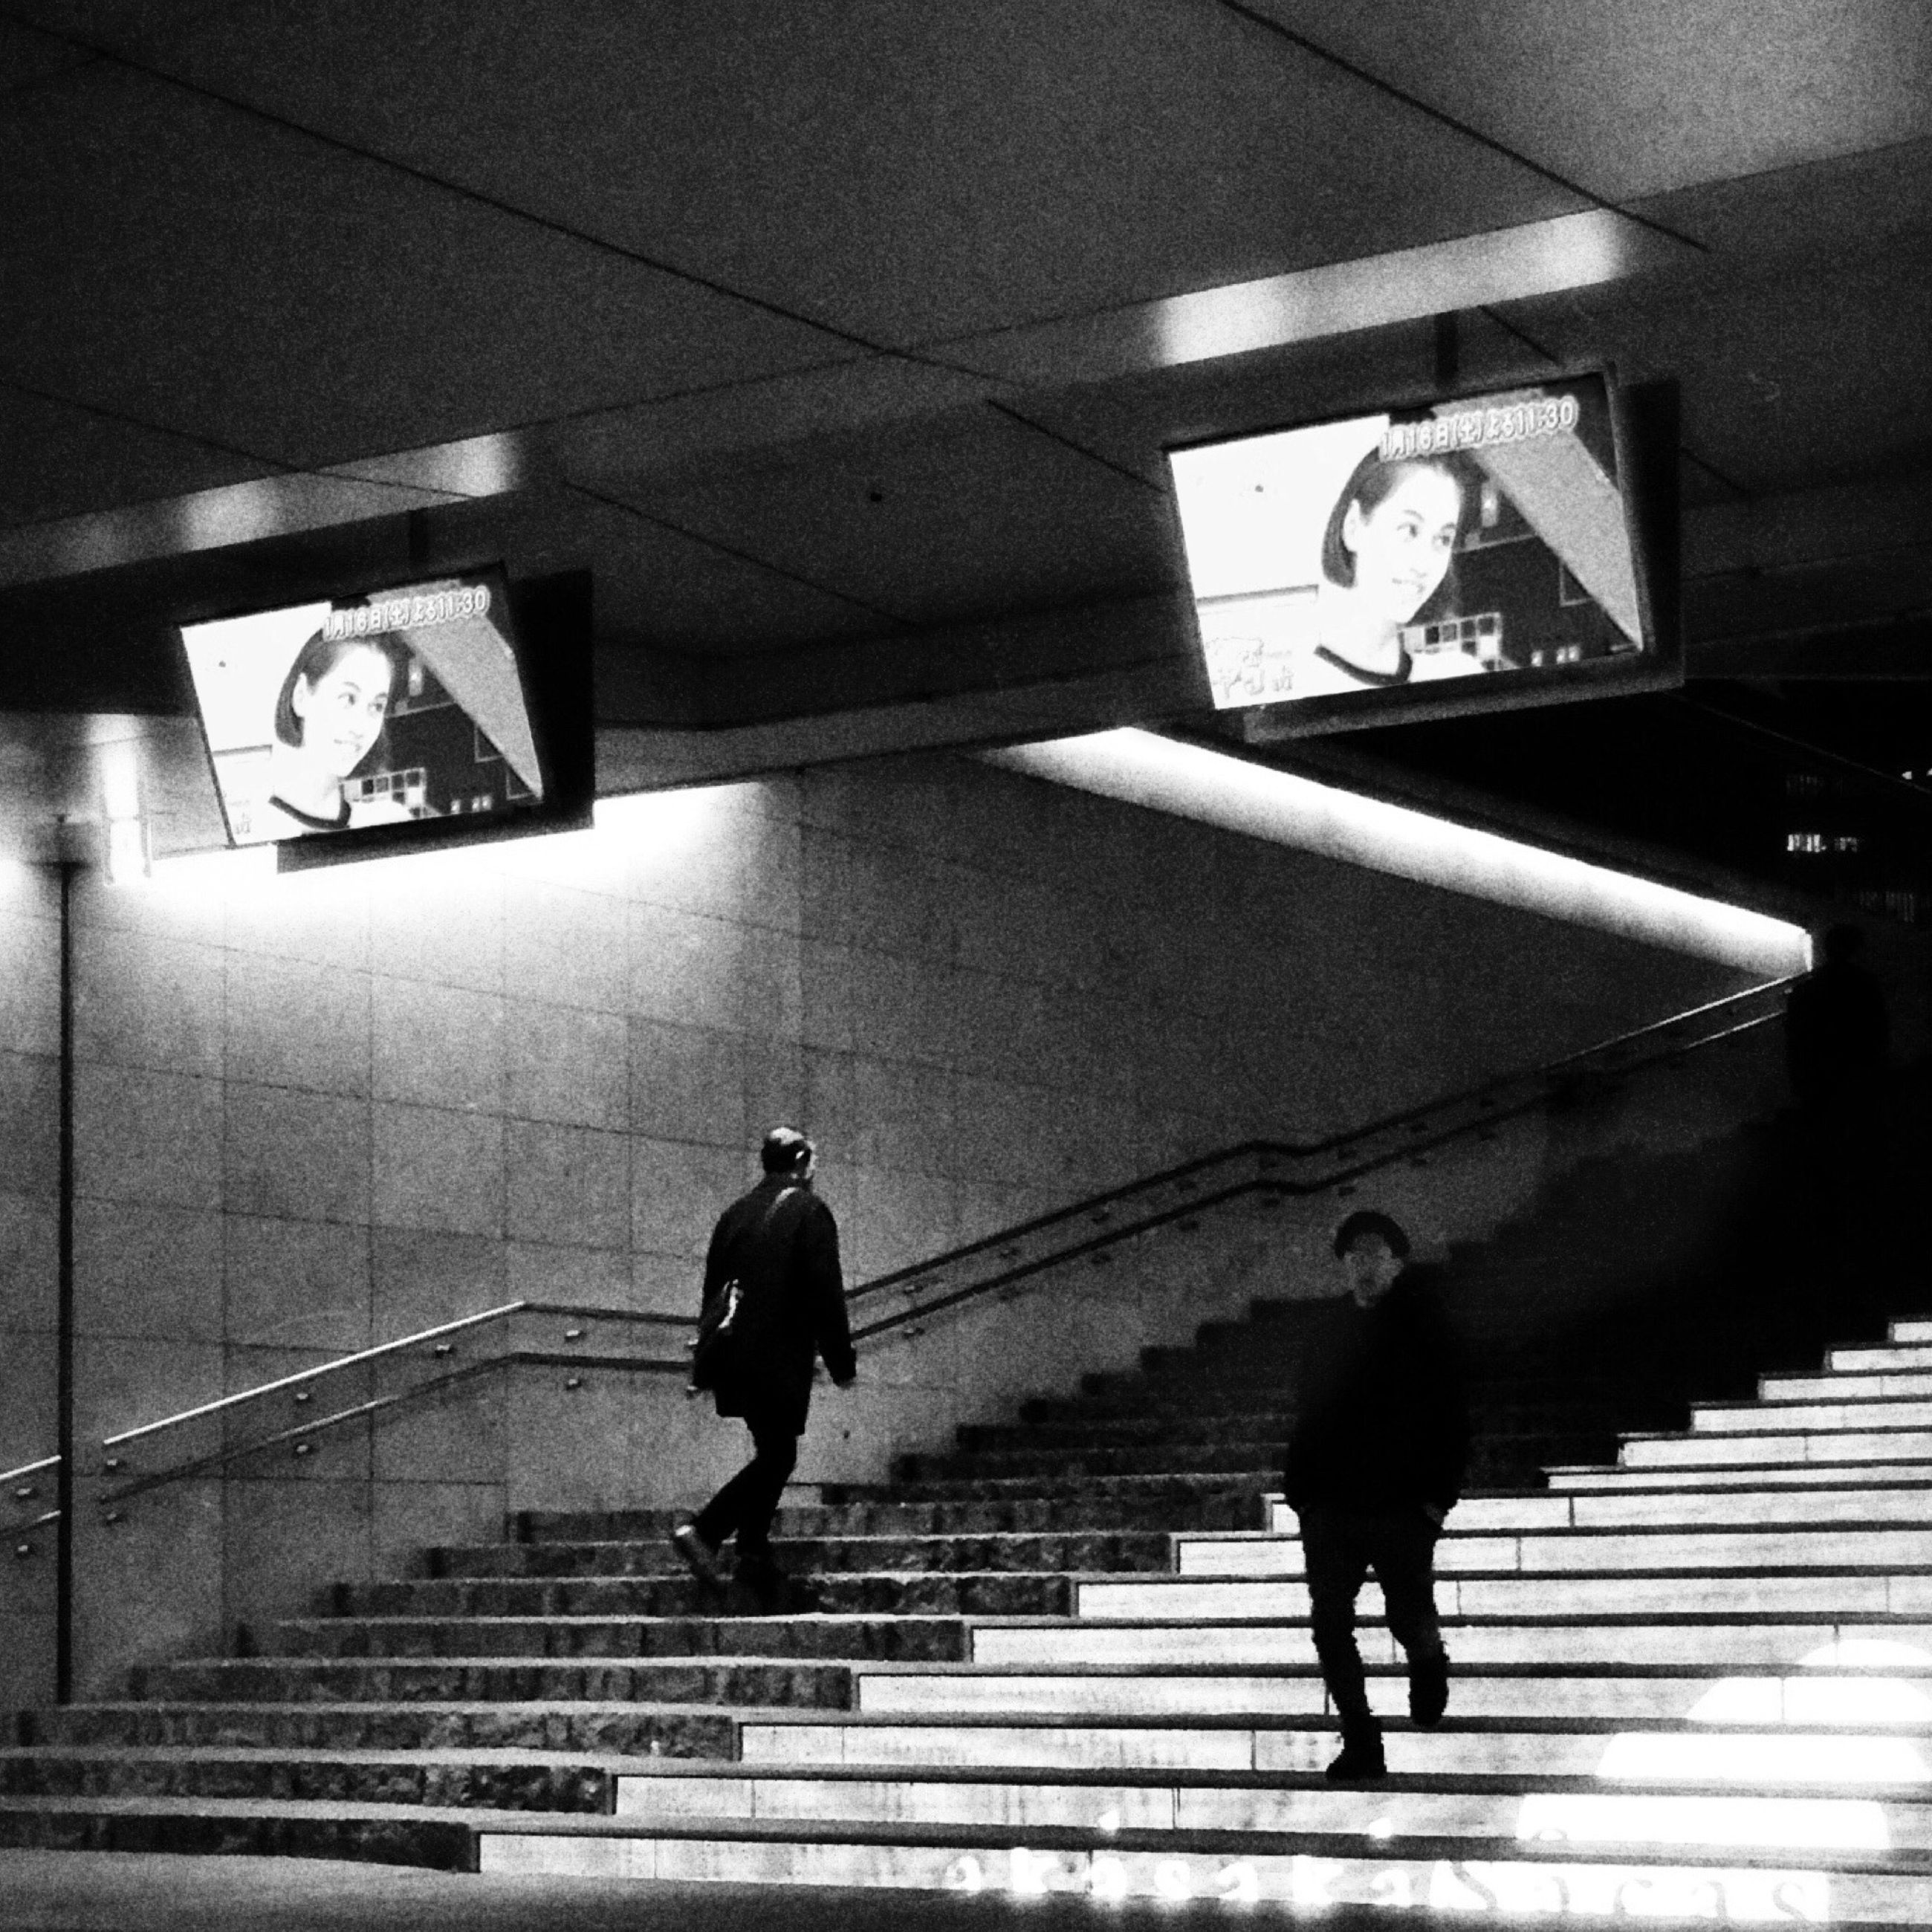 men, steps and staircases, full length, steps, lifestyles, indoors, staircase, railing, built structure, architecture, walking, illuminated, escalator, person, subway, leisure activity, rear view